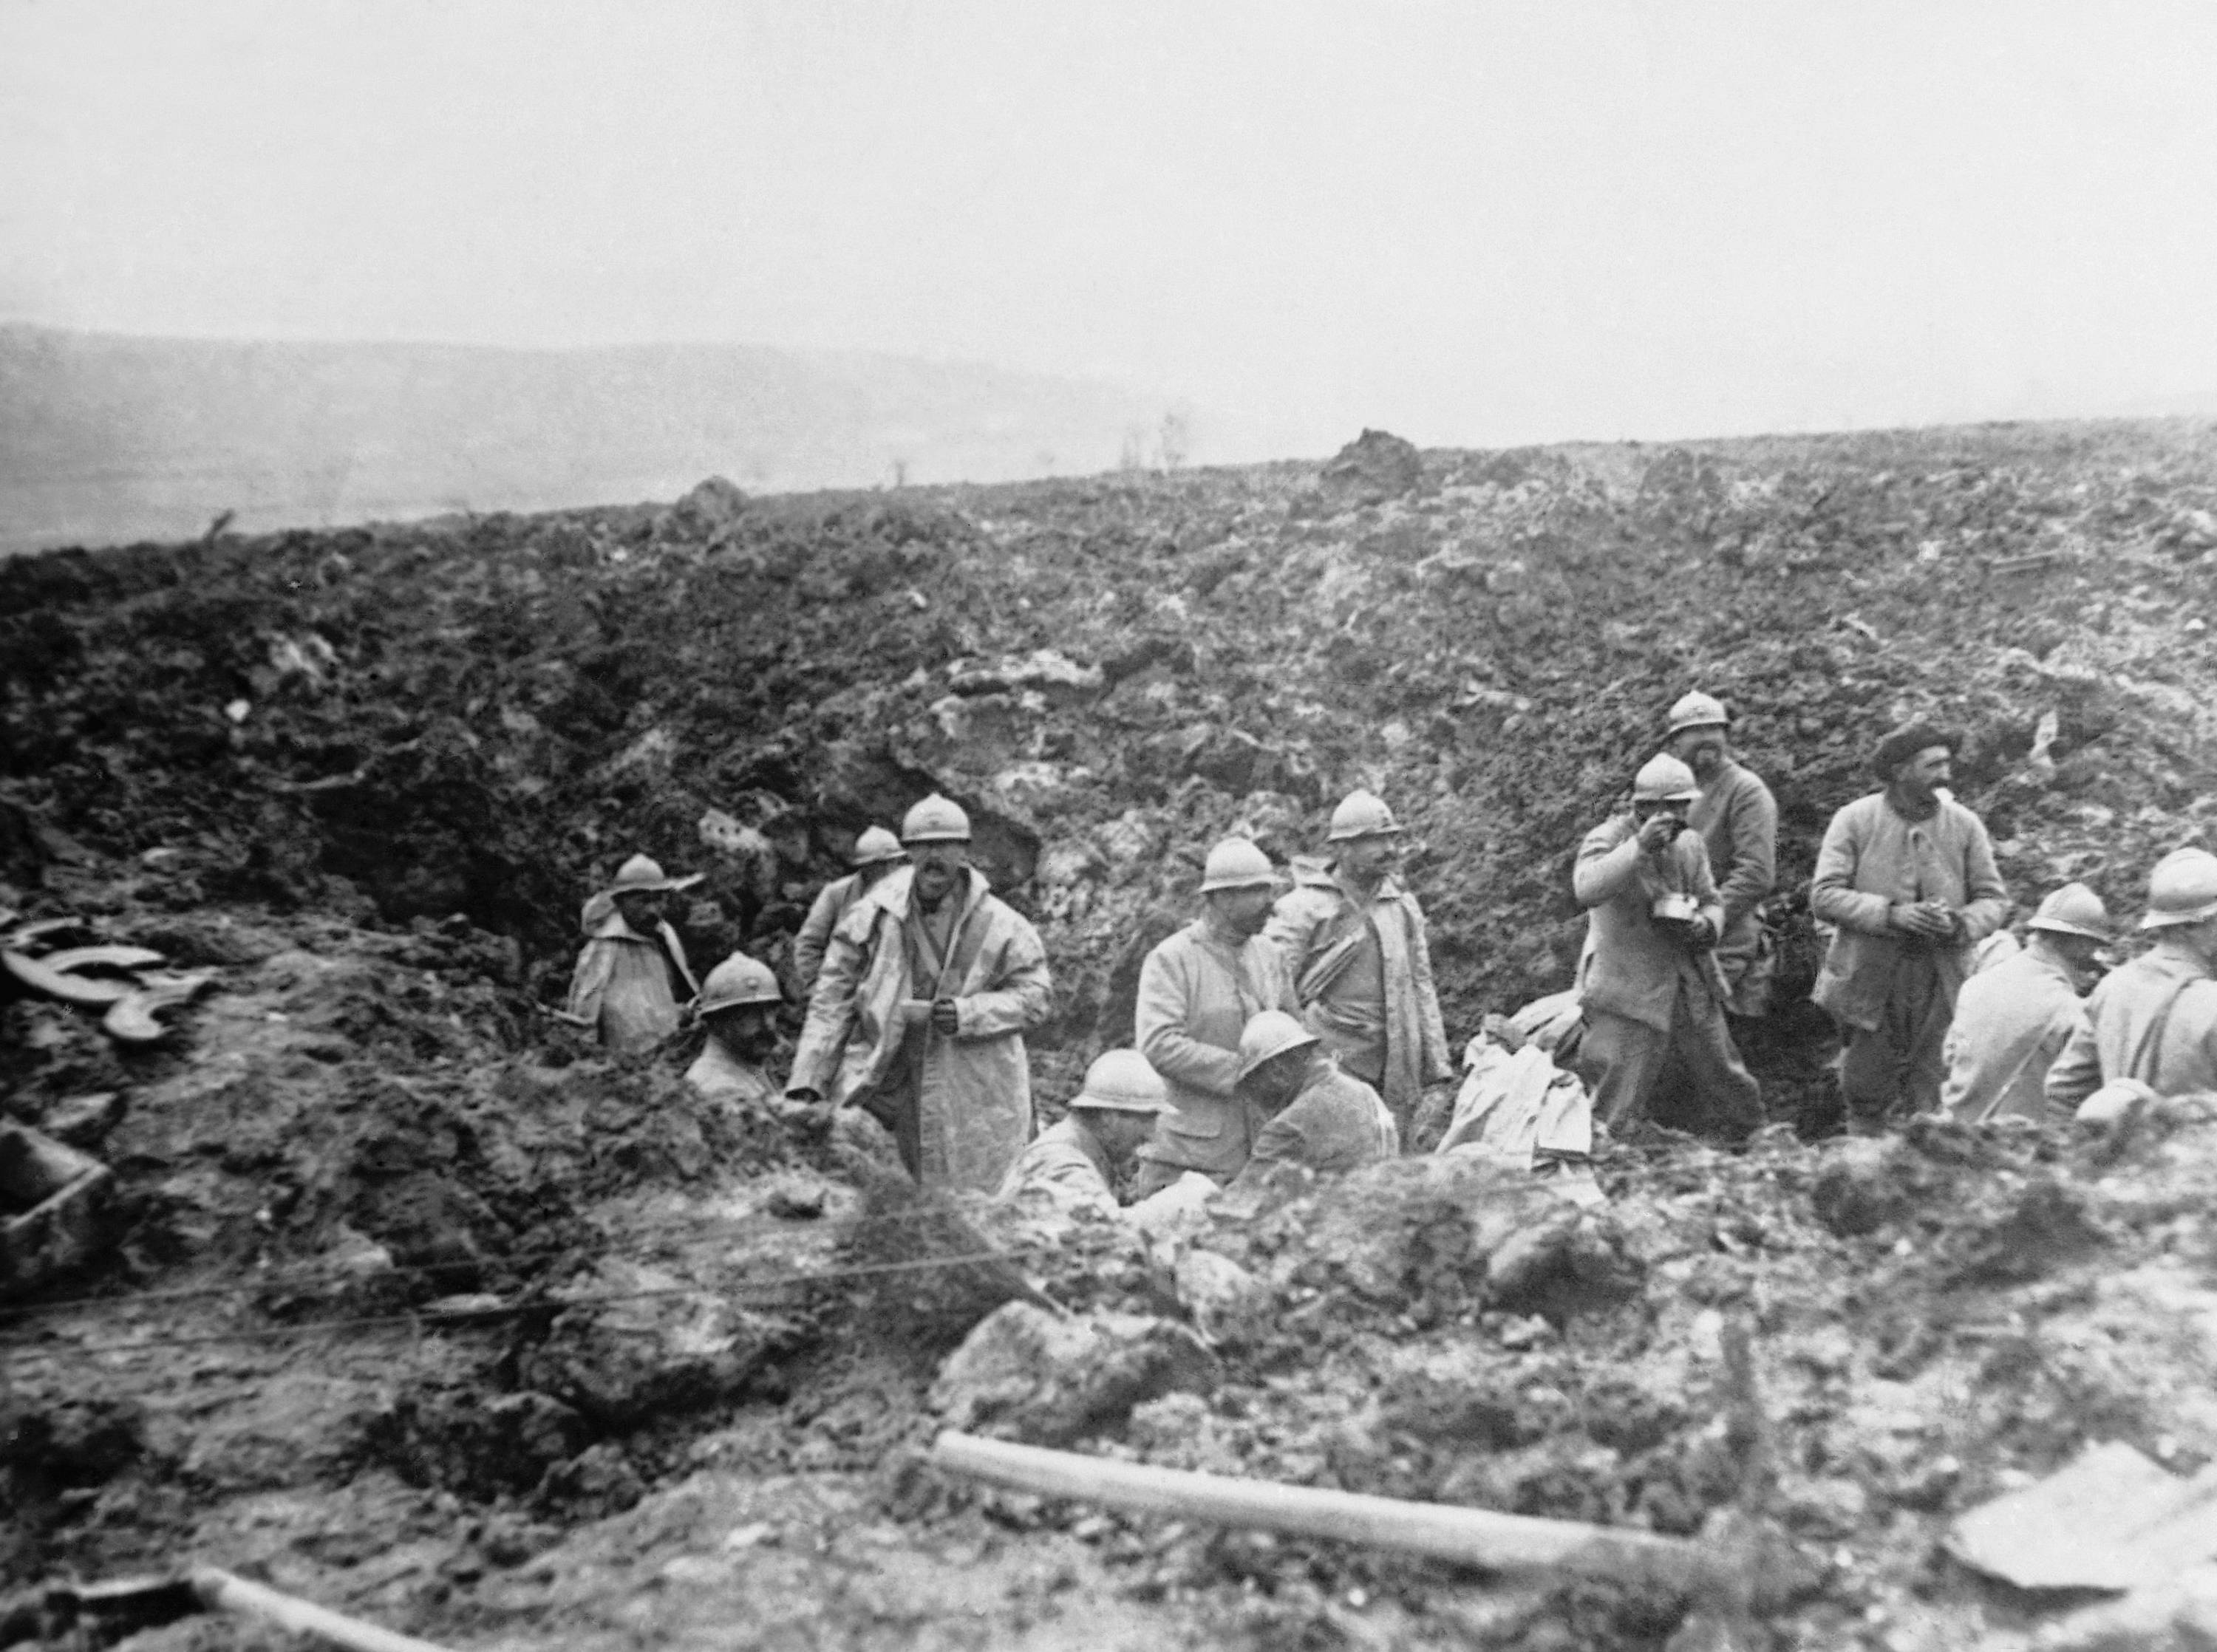 49 OF 100: In this October 1917 file photo, French troops in a shell hole during the offensive, which resulted in its winning back of the Chemin des Dames in France at the end of October 1917.